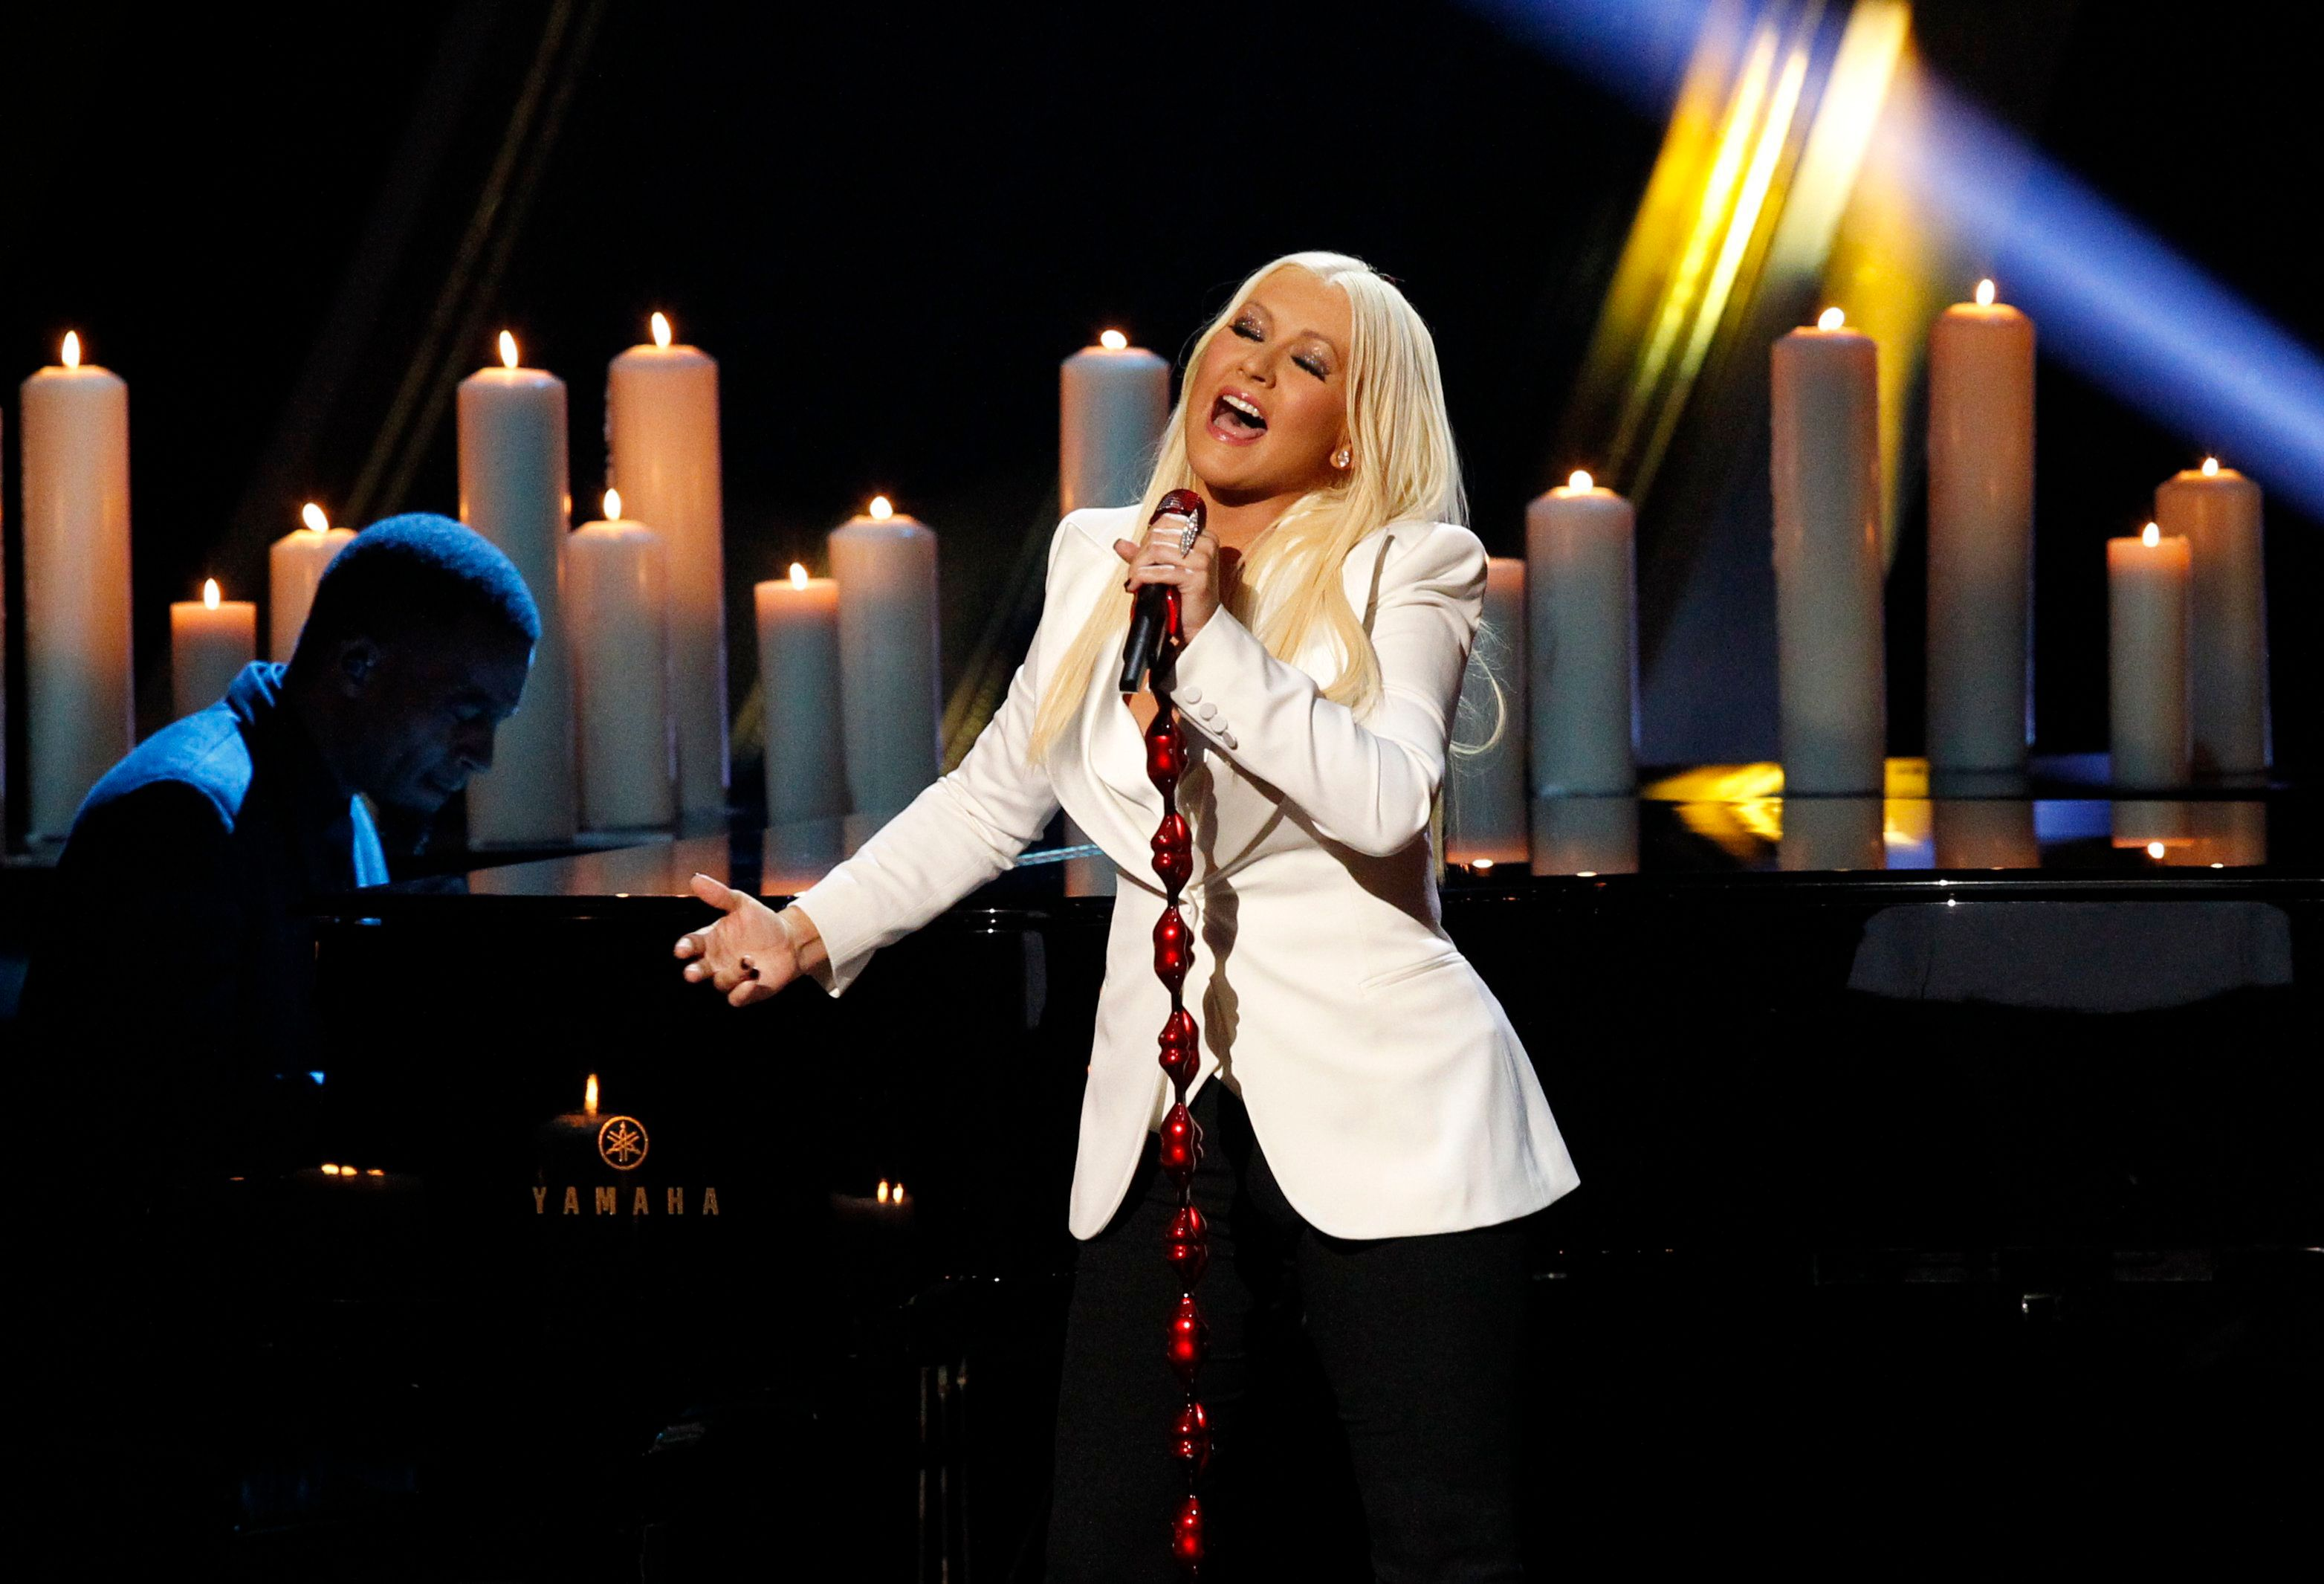 Christina Aguilera performs at the People's Choice Awards in 2013.